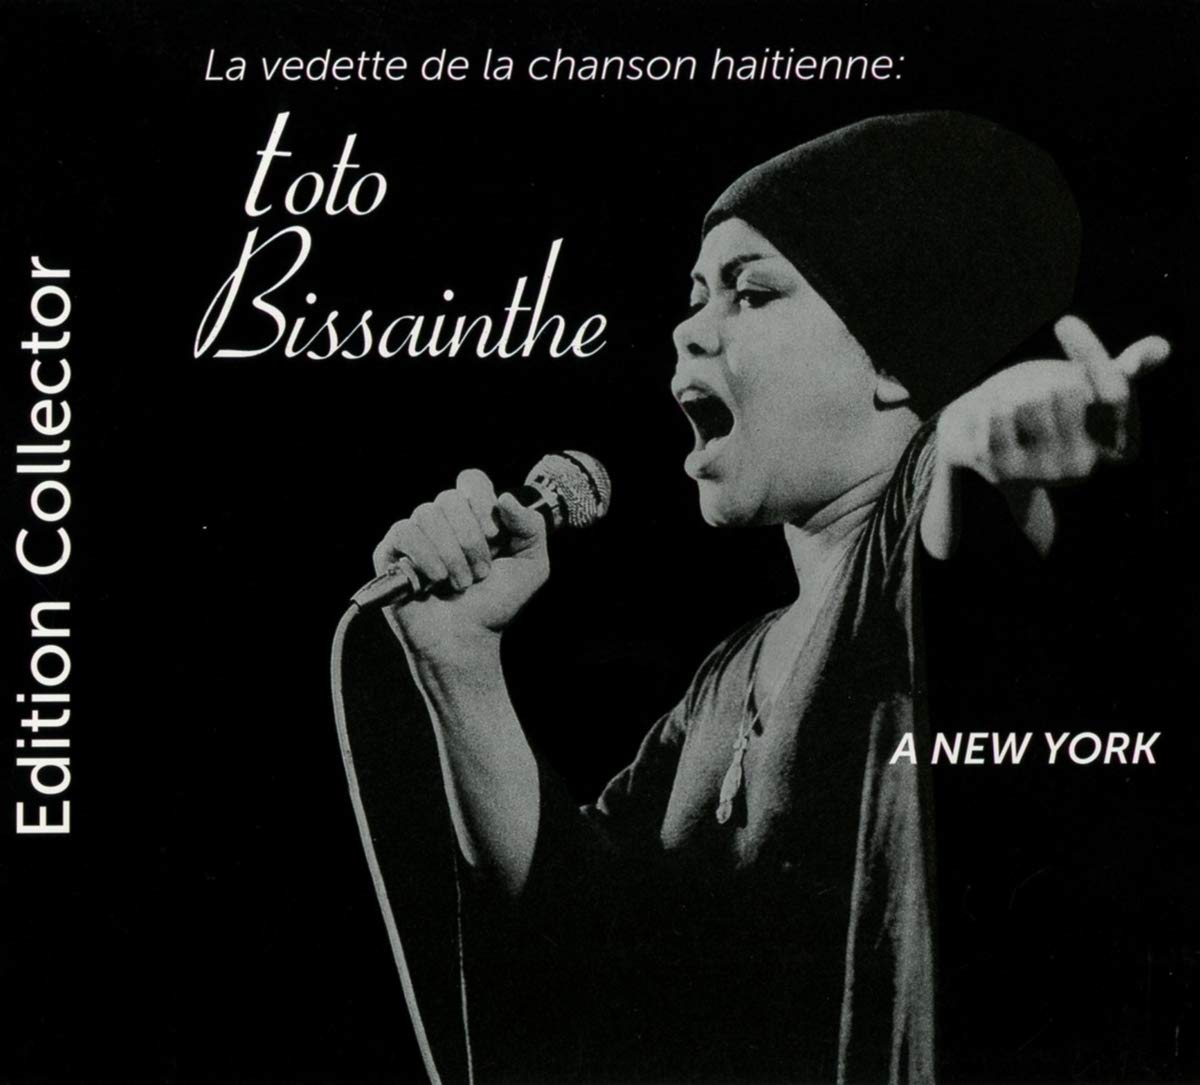 TOTO BISSAINTHE - A New York - Amazon.com Music